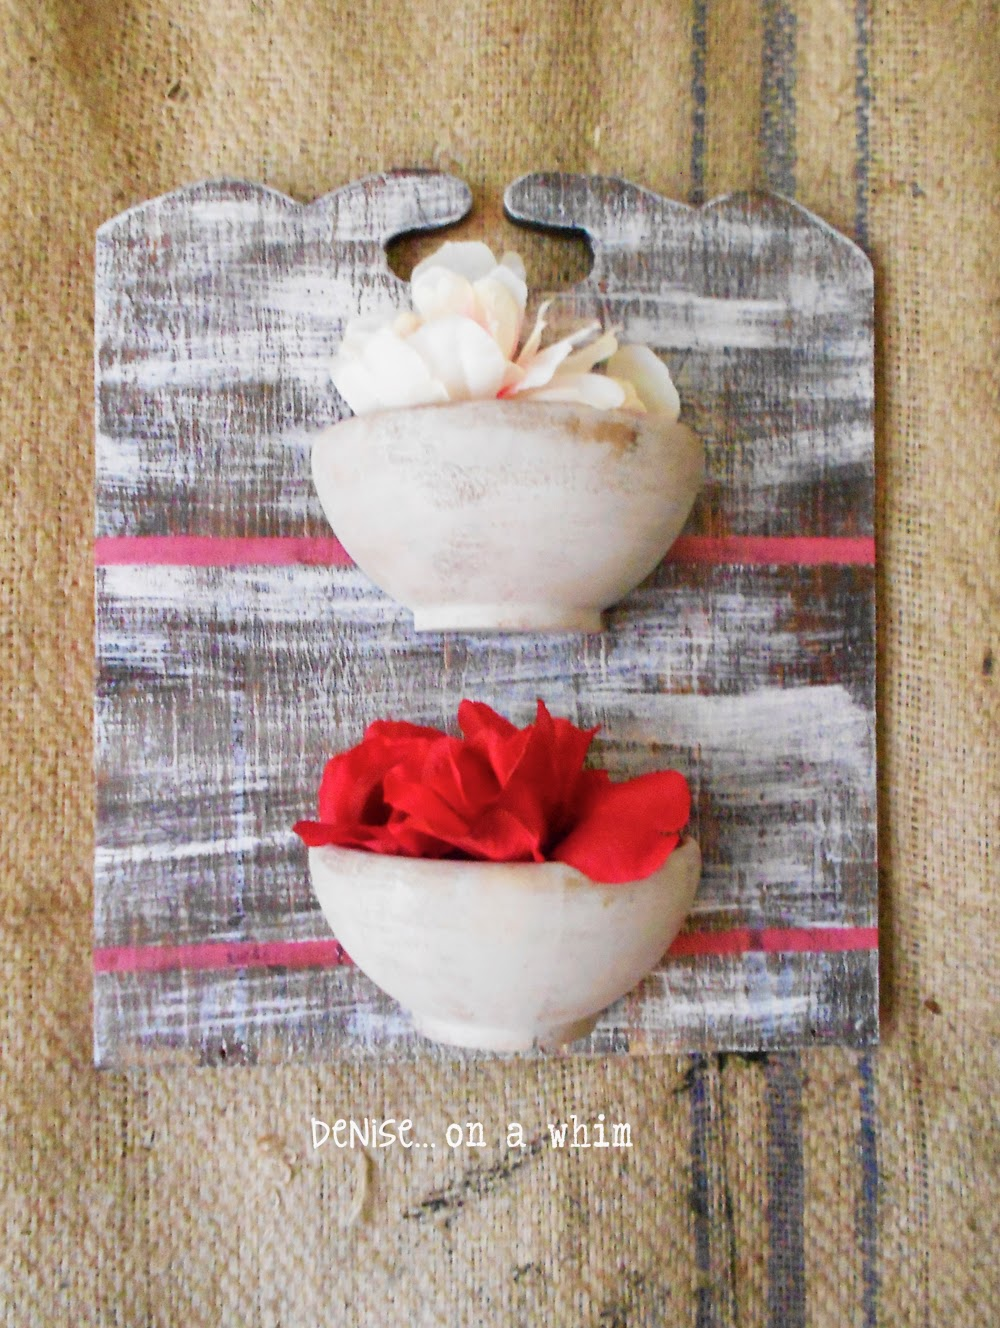 Wooden bowls, cut in half, become a small wall ogranizer or display